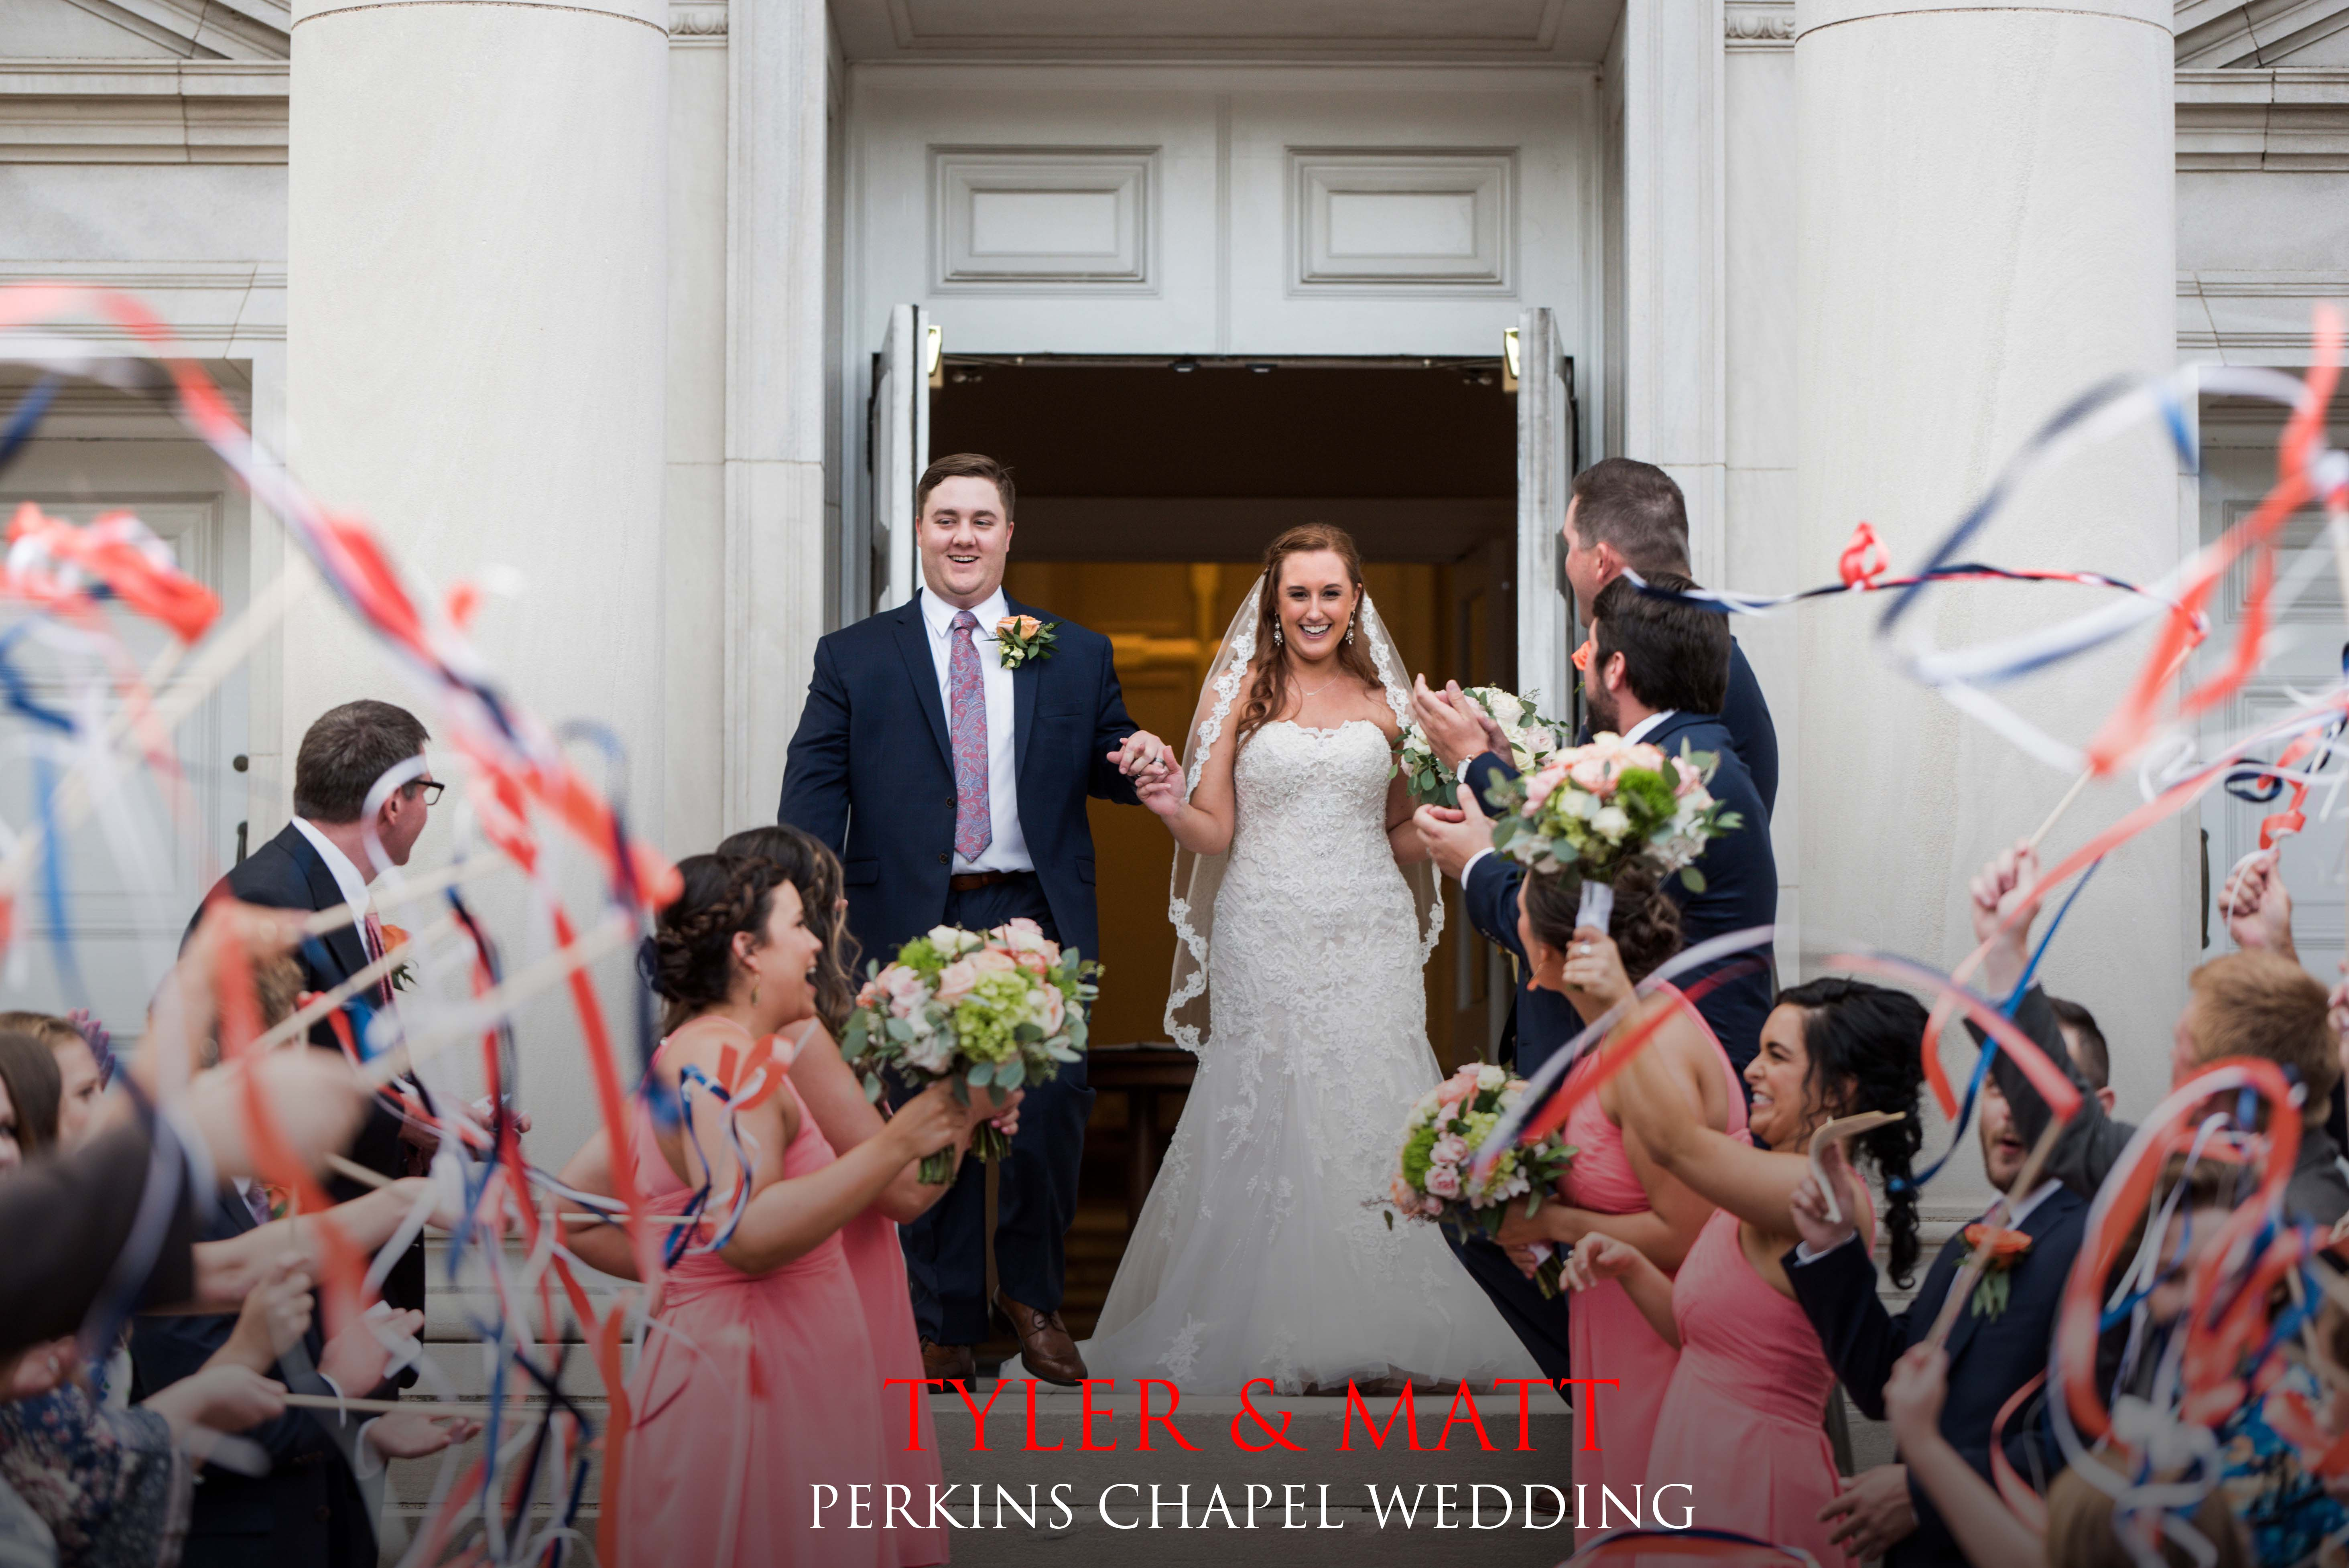 Perkins Chapel Wedding